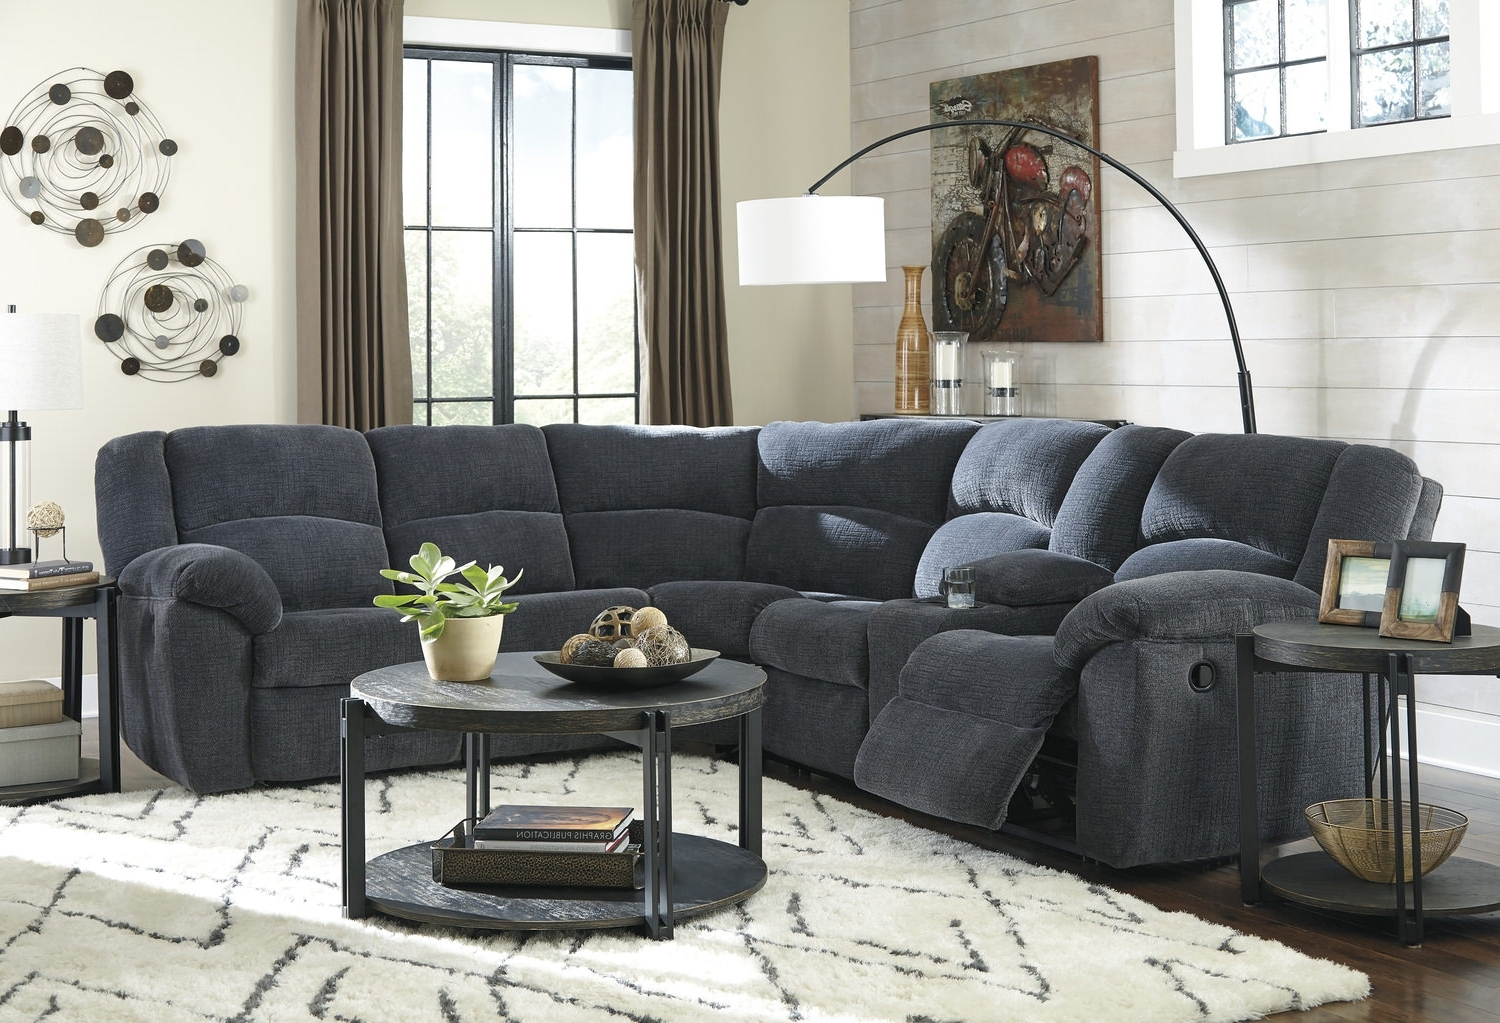 Hom Furniture With Regard To Duluth Mn Sectional Sofas (View 13 of 20)